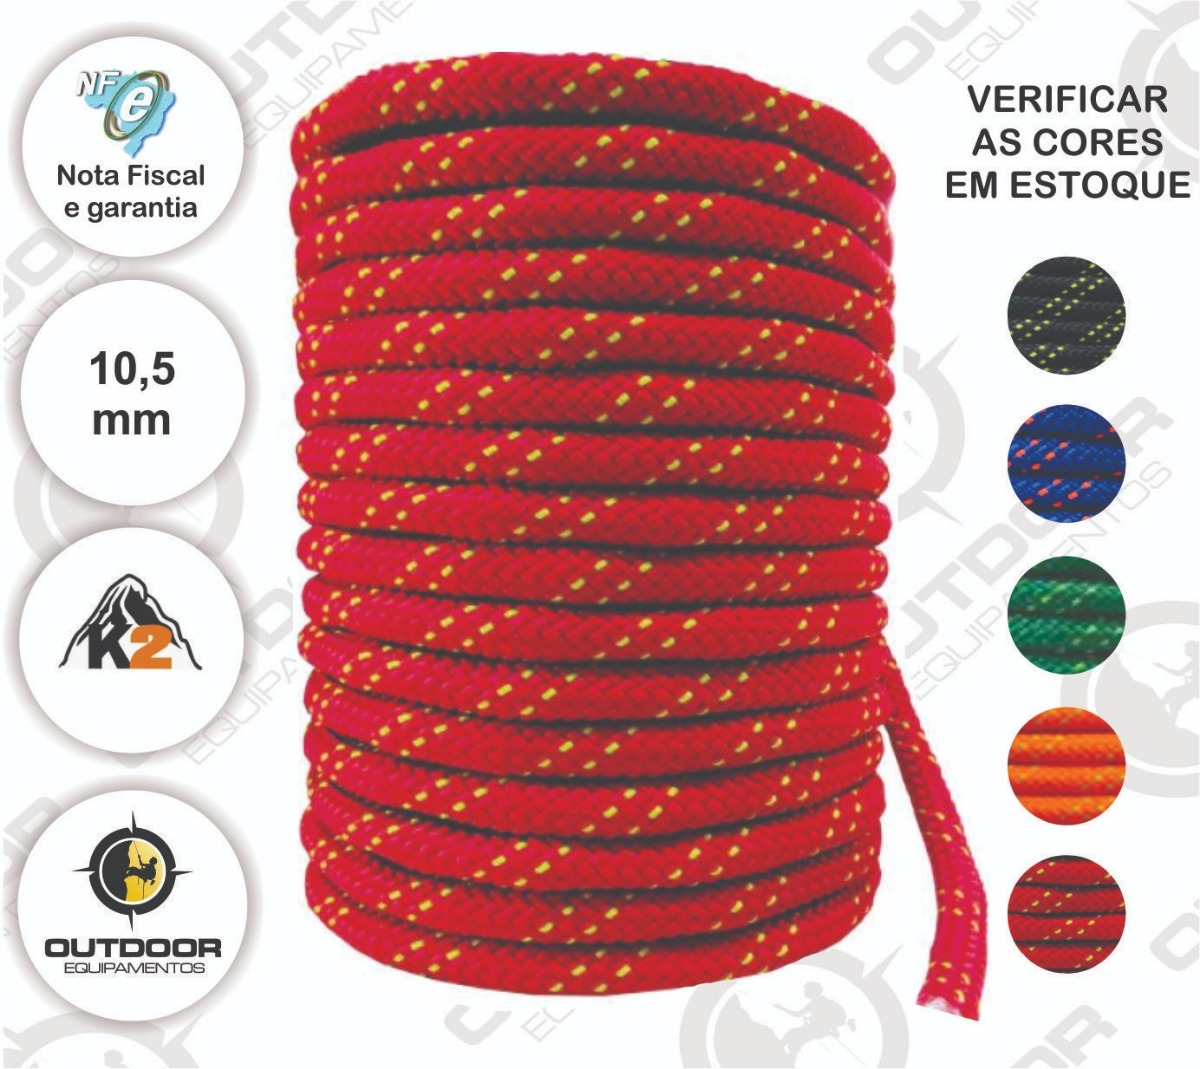 2d89cd9b Corda Semi Estática K2 11,5mm X 100m K2 Rapel Alpinismo - R$ 659,00 ...